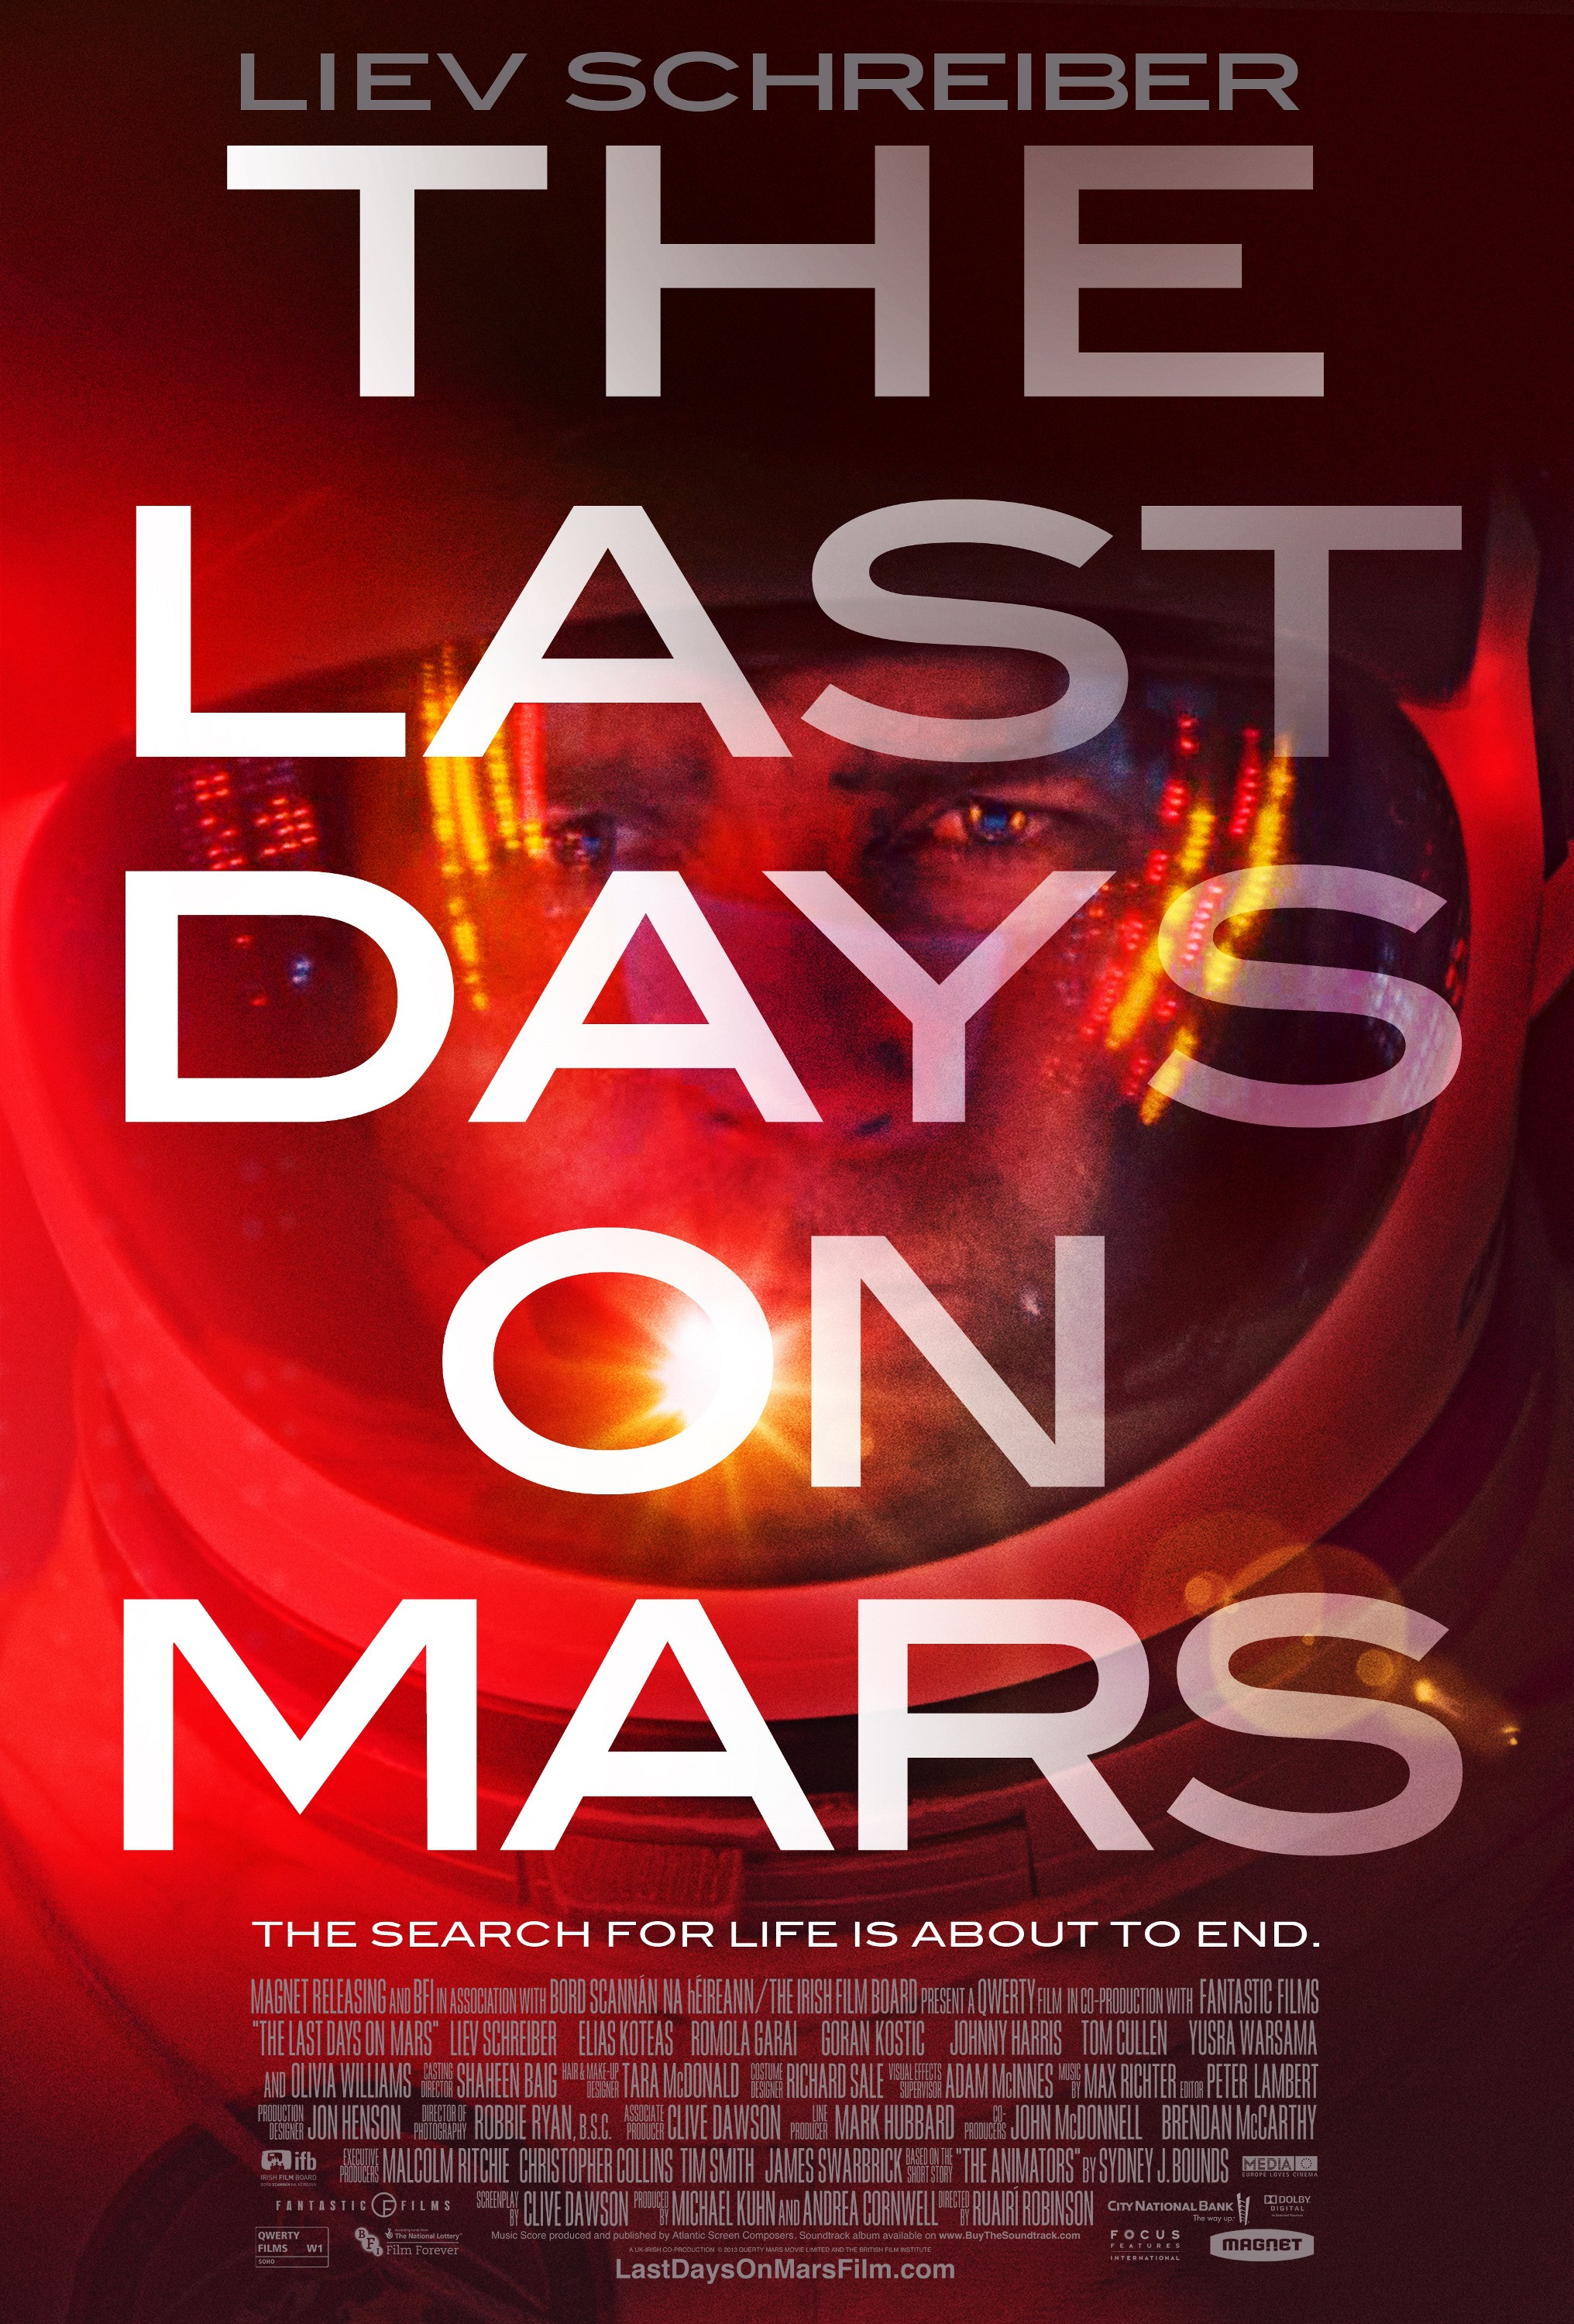 The Last Days on Mars-Official Poster Banner PROMO POSTER XXLG-01NOVEMBRO2013